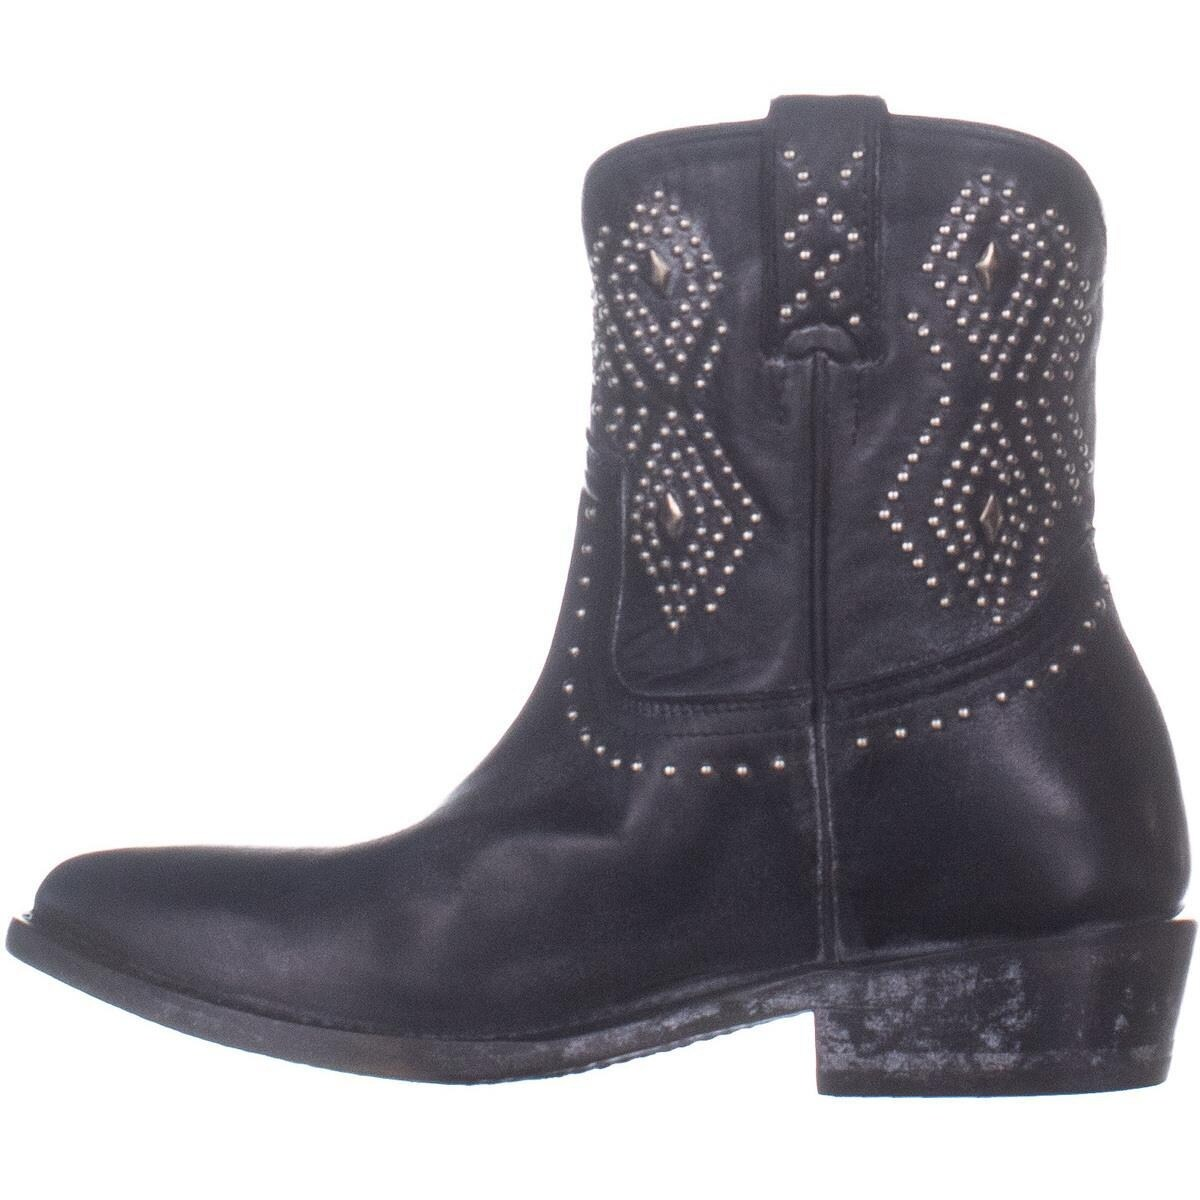 29f58421541 FRYE Billy Stud Short Distressed Western Boots, Black Leather - 8 US